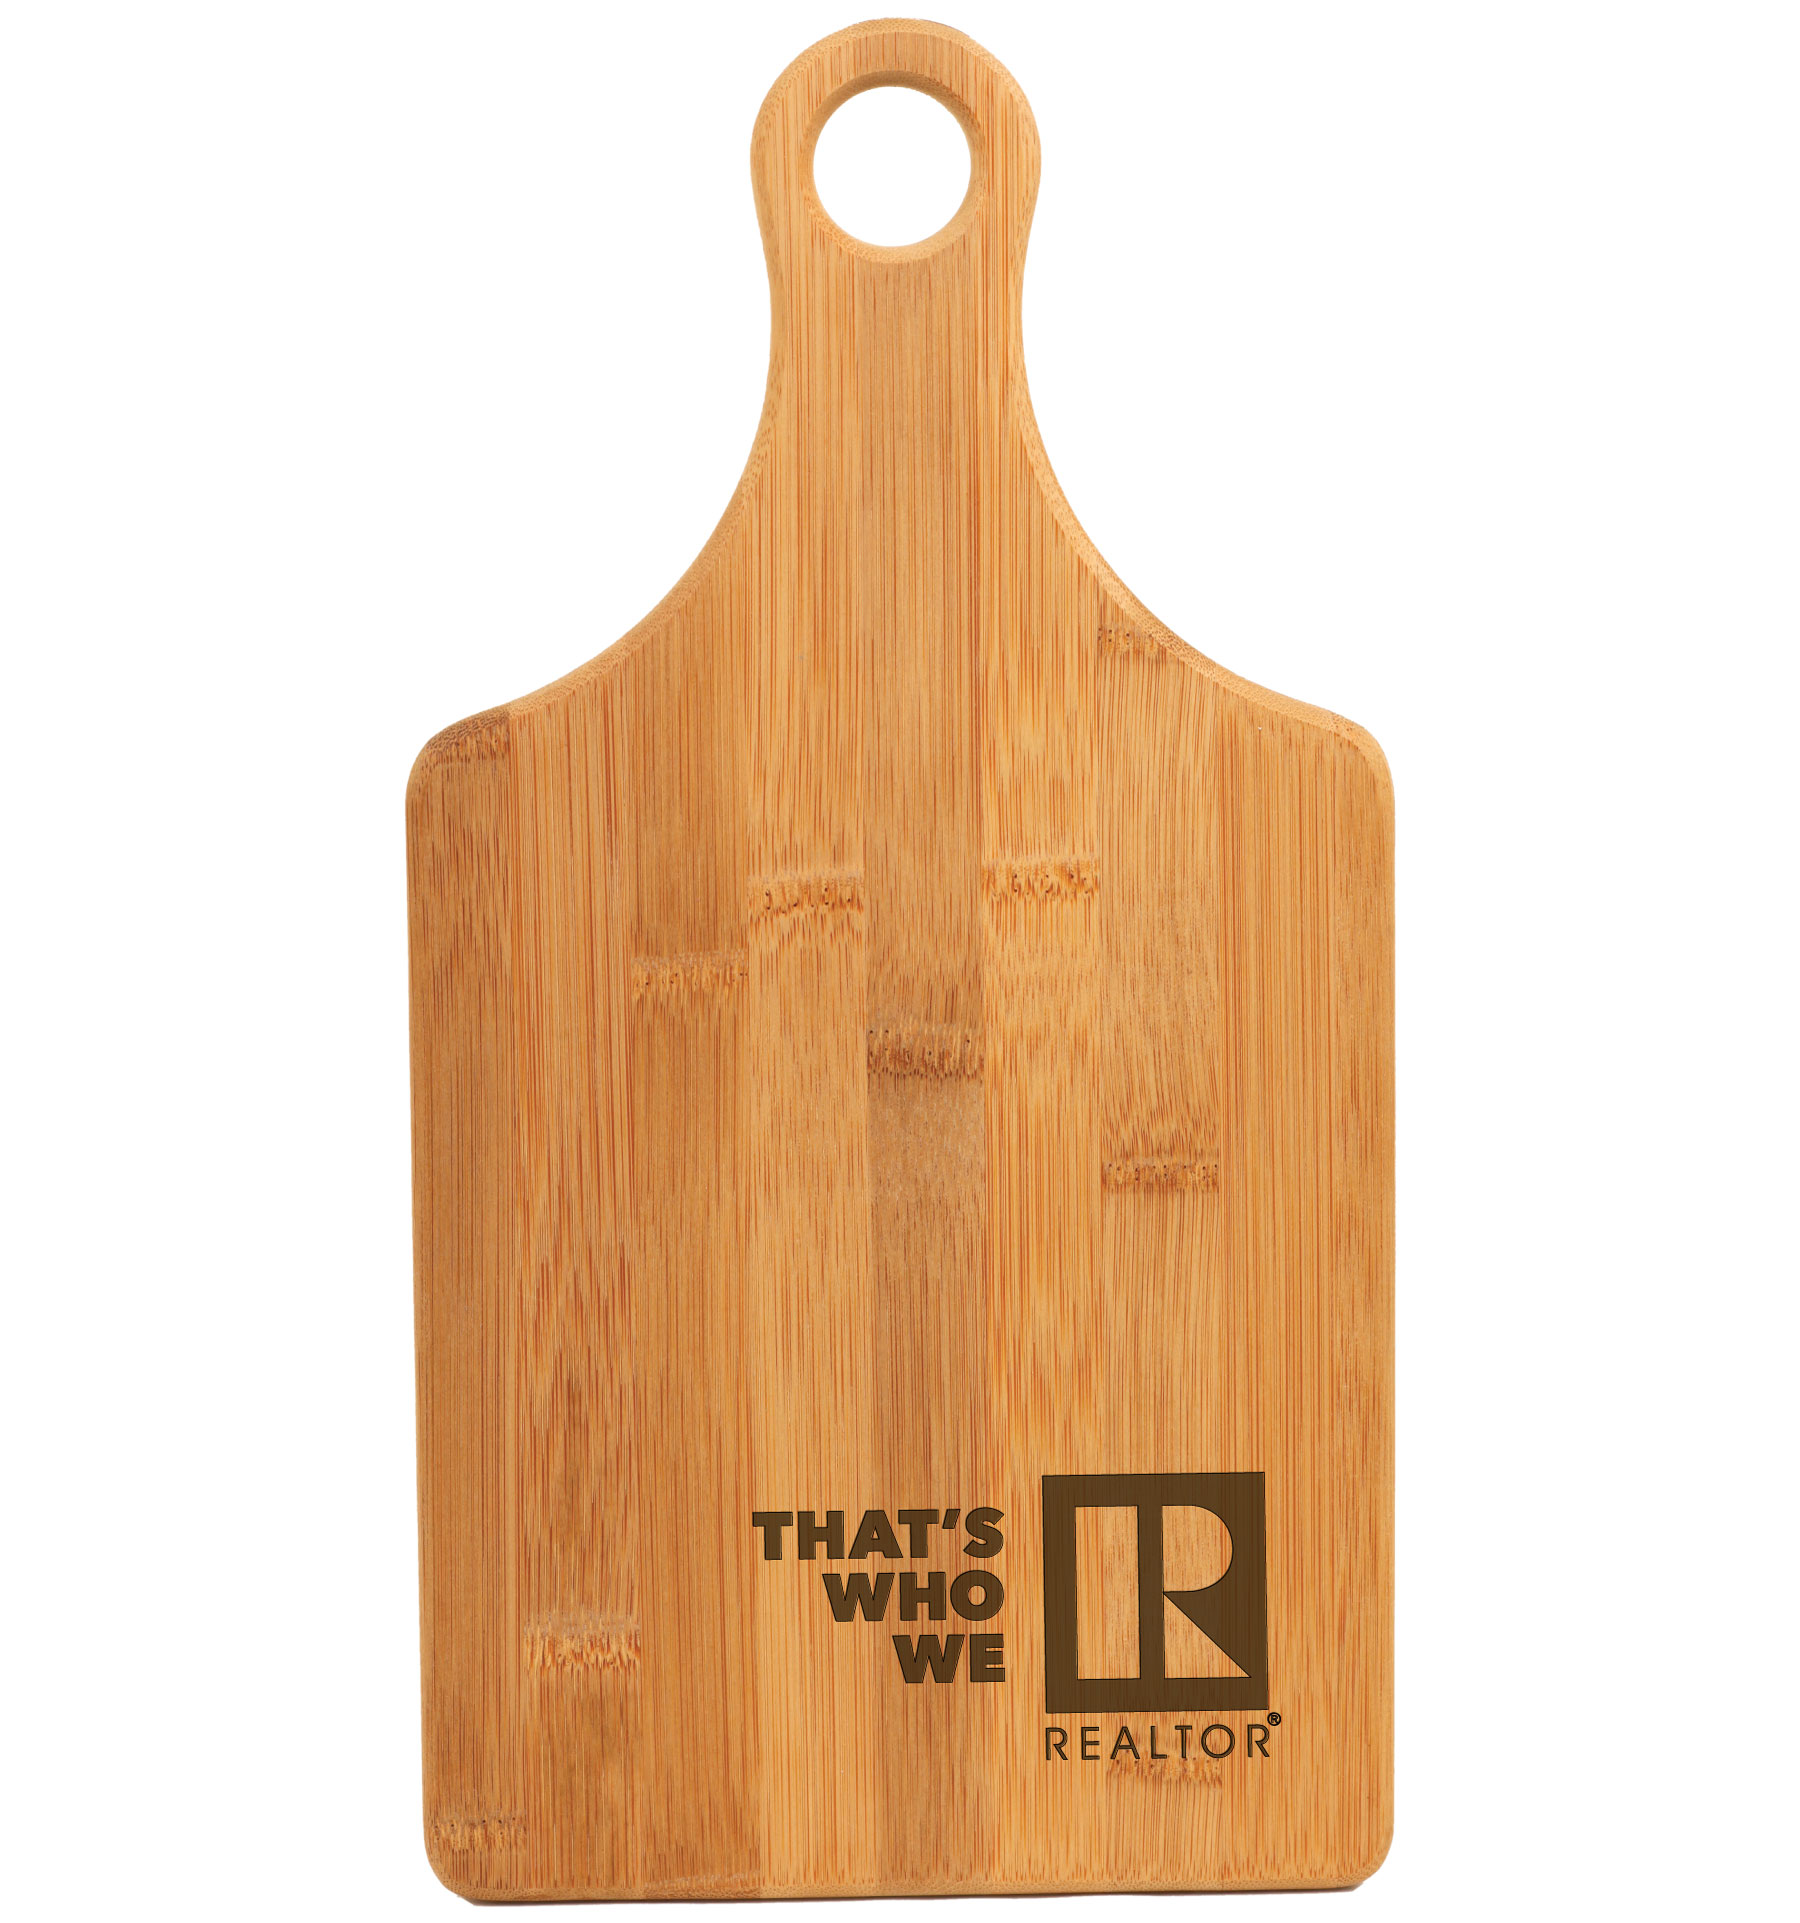 """That's Who We R"" Cutting Board twwr,ThatsWhoWeR,That's,TWWR,ThatWho,That'sWho,Twwr,Thats,Whos,We,Ares,twwr,ThatsWhoWeR,That's,TWWR,ThatWho,That'sWho,Cuts,Boards,Whos,Wes,Ours"